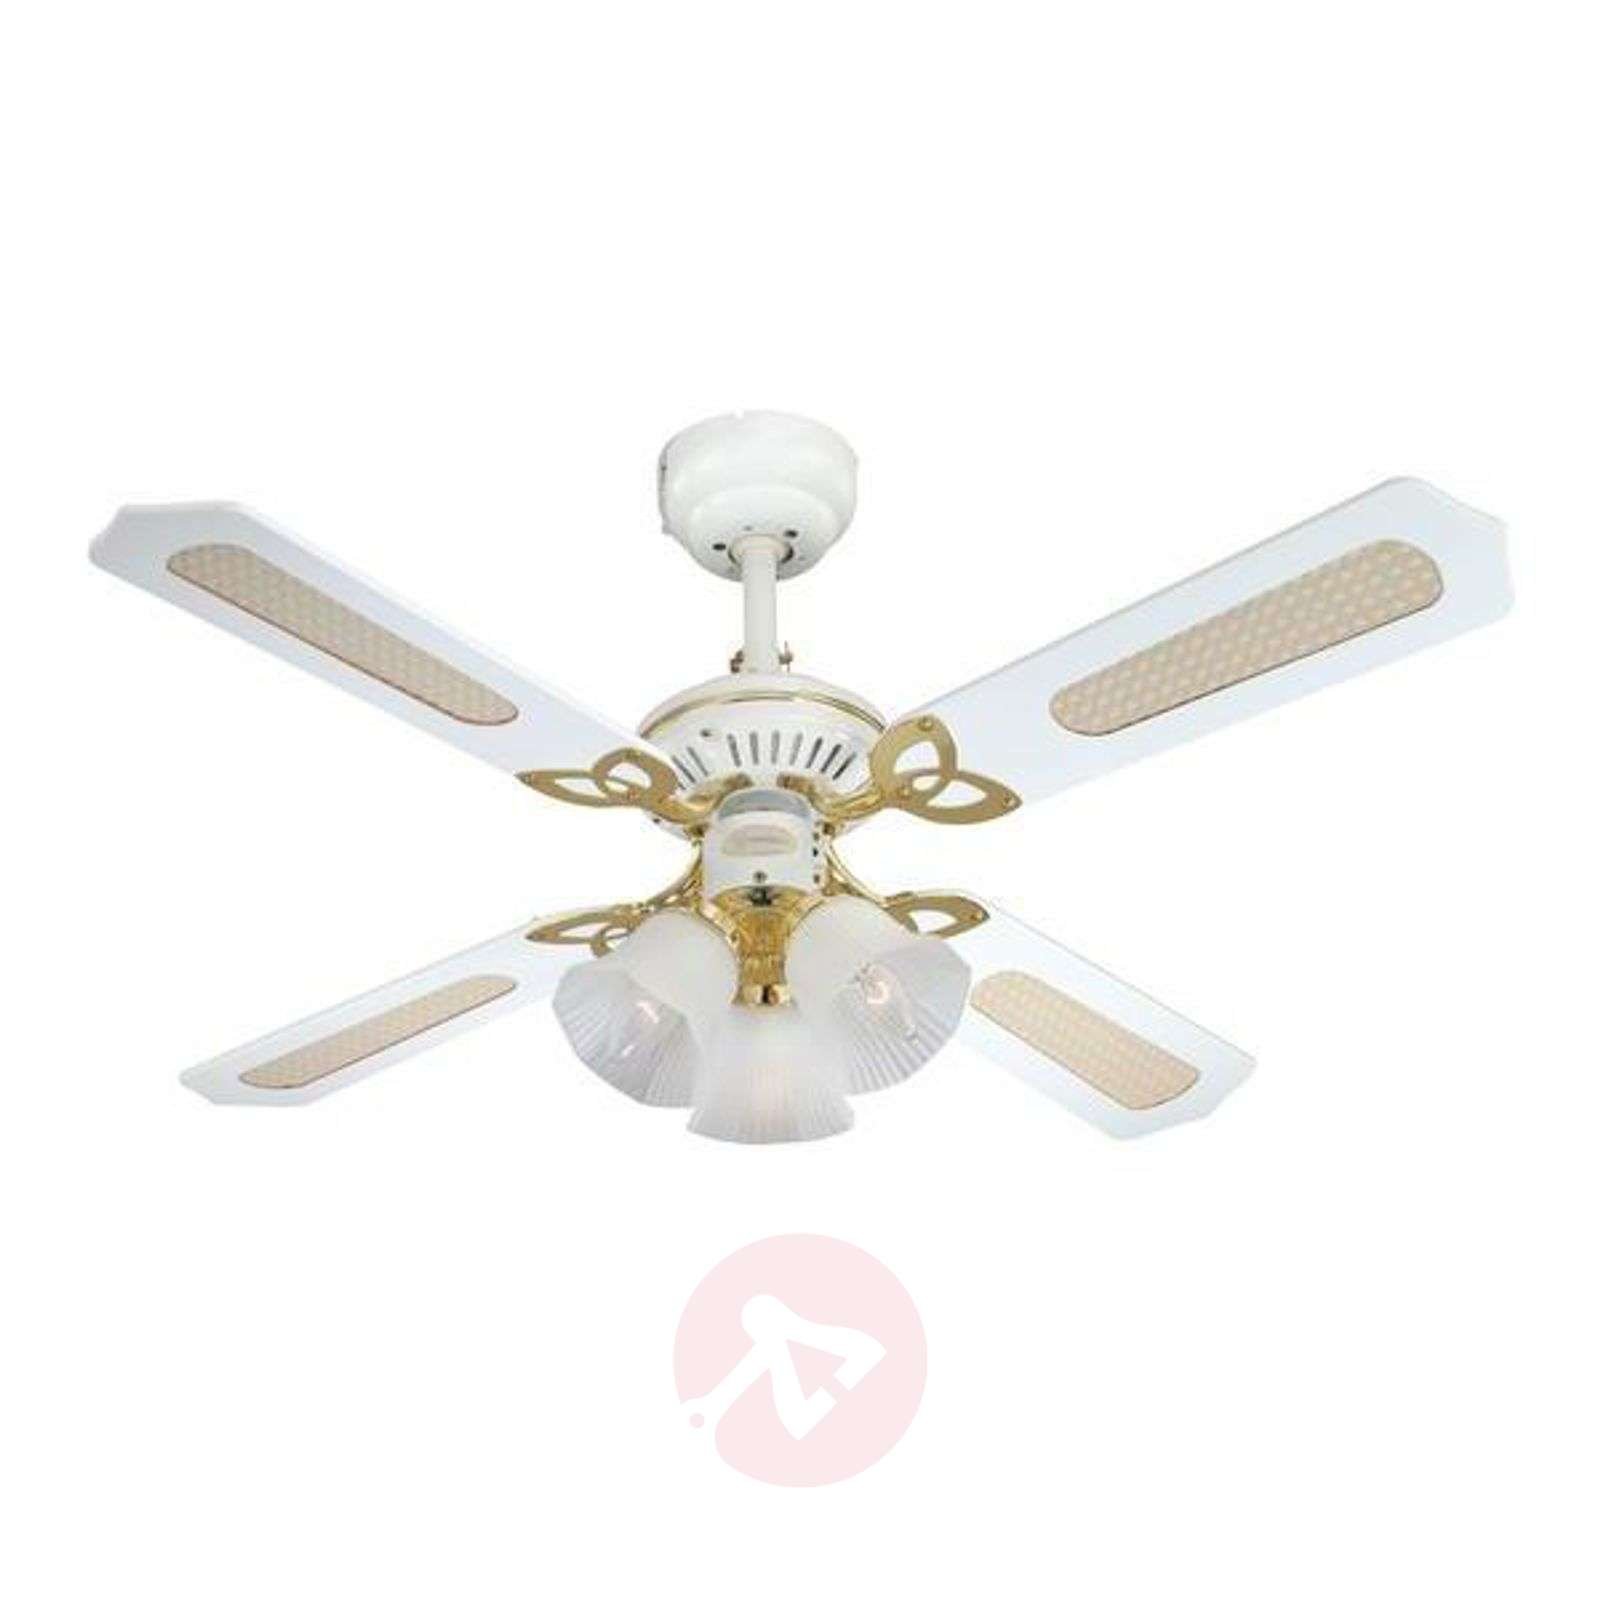 Exclusive Princess Trio Ceiling Fan In White 9602167 05